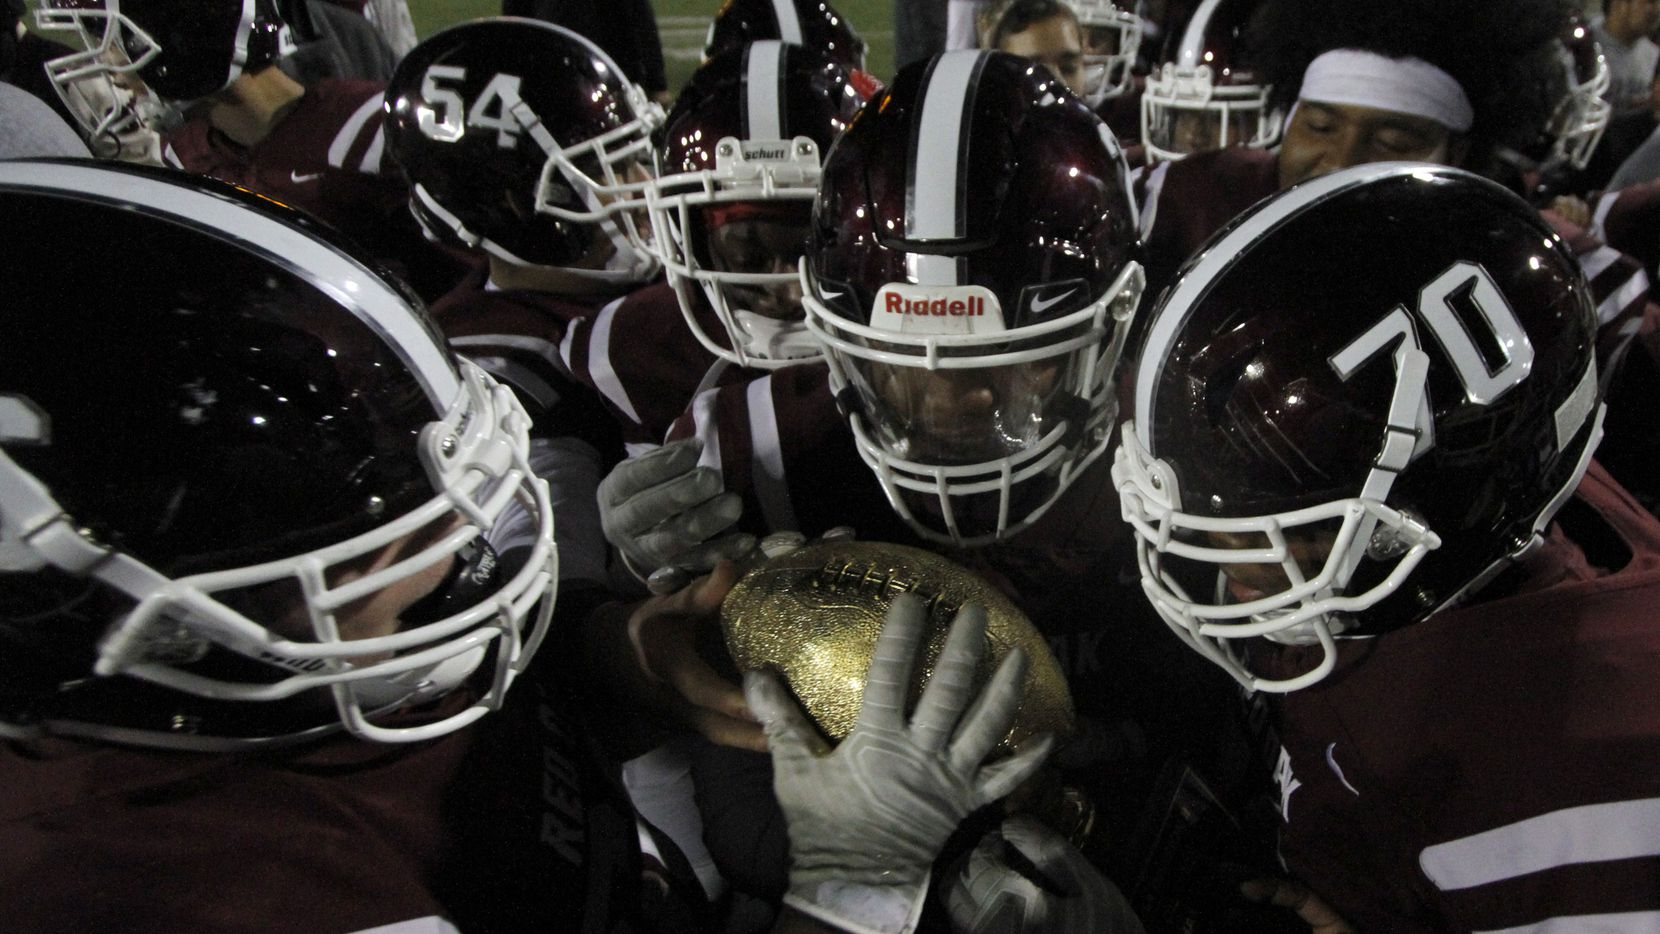 Members of the Red Oak Hawks marvel at the golden football atop a trophy presented after they finished on top of the District 6-5A Division ll competition to receive the coveted district acknowledgement. It marked the first time since 1982 that the hawks have received the honor as lone district champions. Red oak defeated Seagoville 48-13 in their regular season finale played at Billy Goodloe Stadium in Red Oak on November 7, 2019. (Steve Hamm/ Special Contributor)